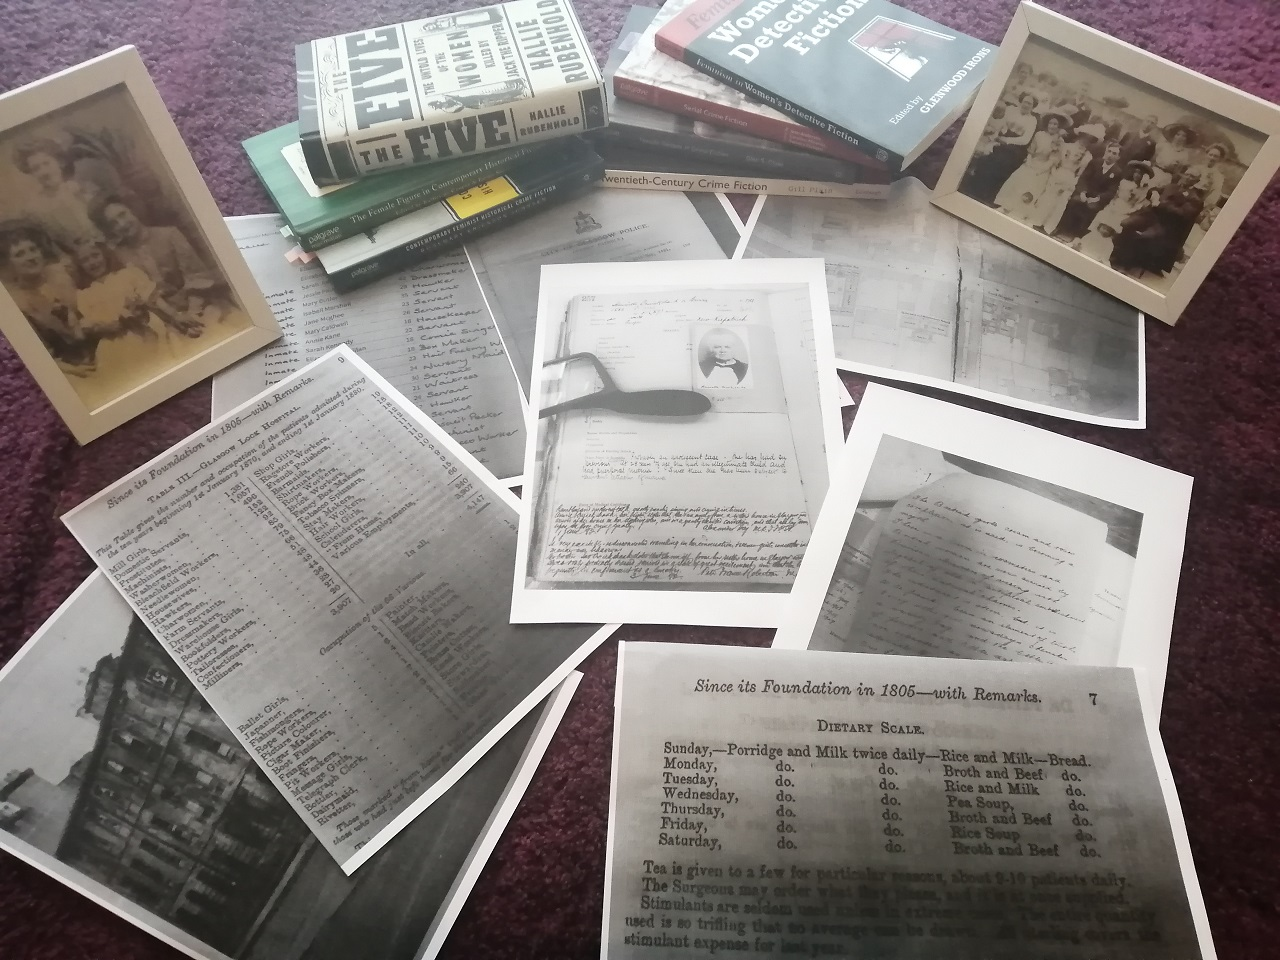 Research Materials for the historical crime fiction novellas. Credit: Donna Moore. Includes photographs, books and scanned pages.